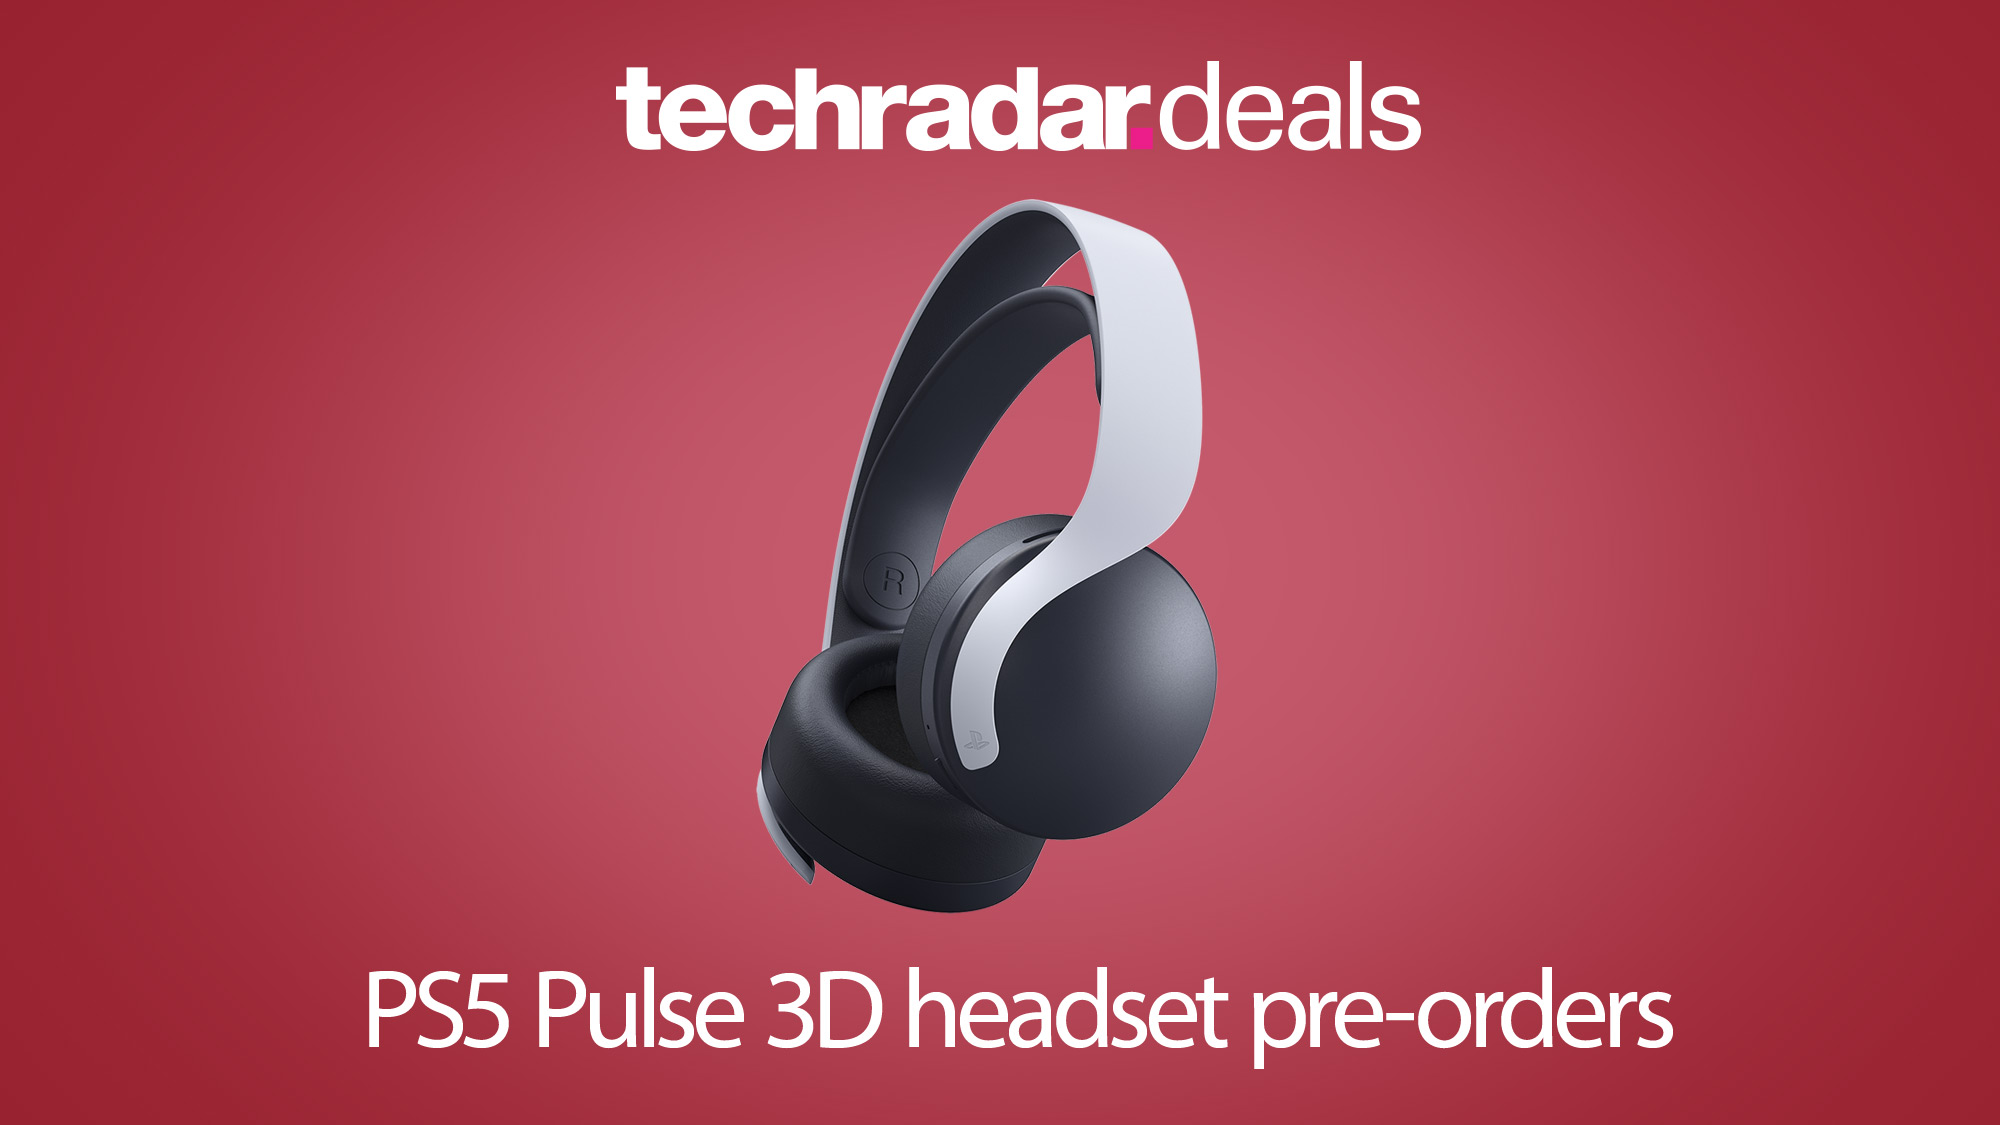 Ps5 Pulse 3d Headset Price And Stock Where To Buy The New Ps5 Headphones Techradar